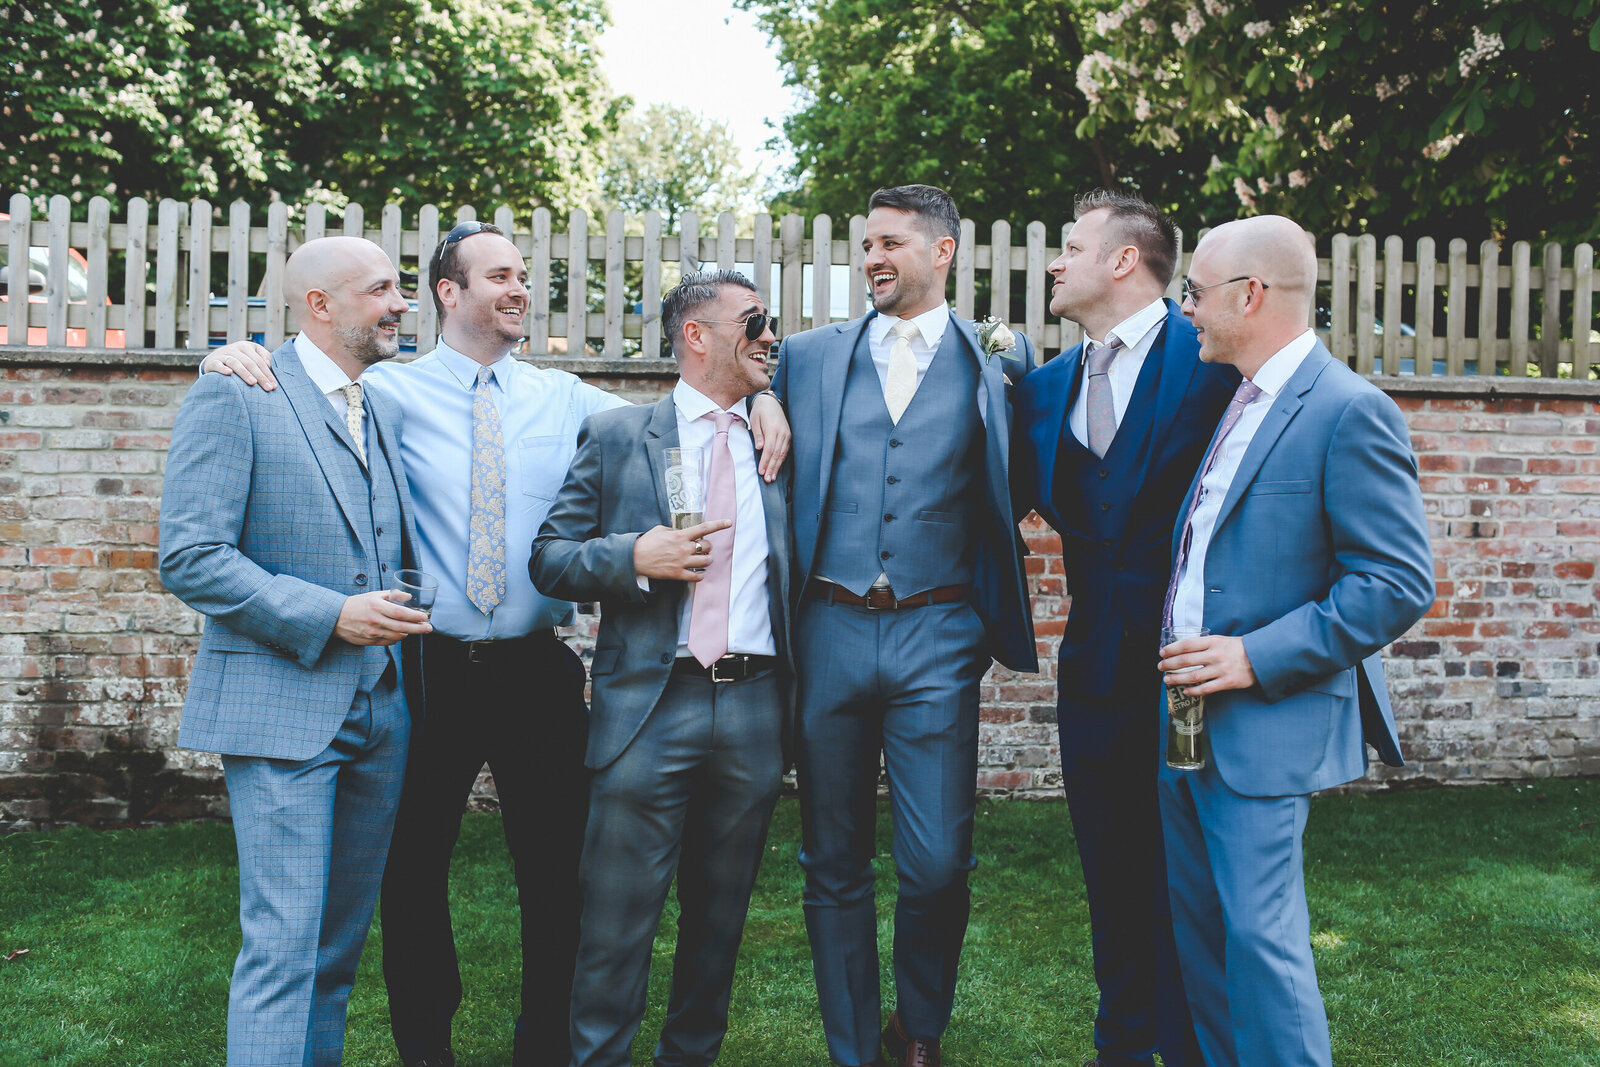 LAINS-BARN-WEDDING-PHOTOGRAPHER-FUN-REALXED-0044